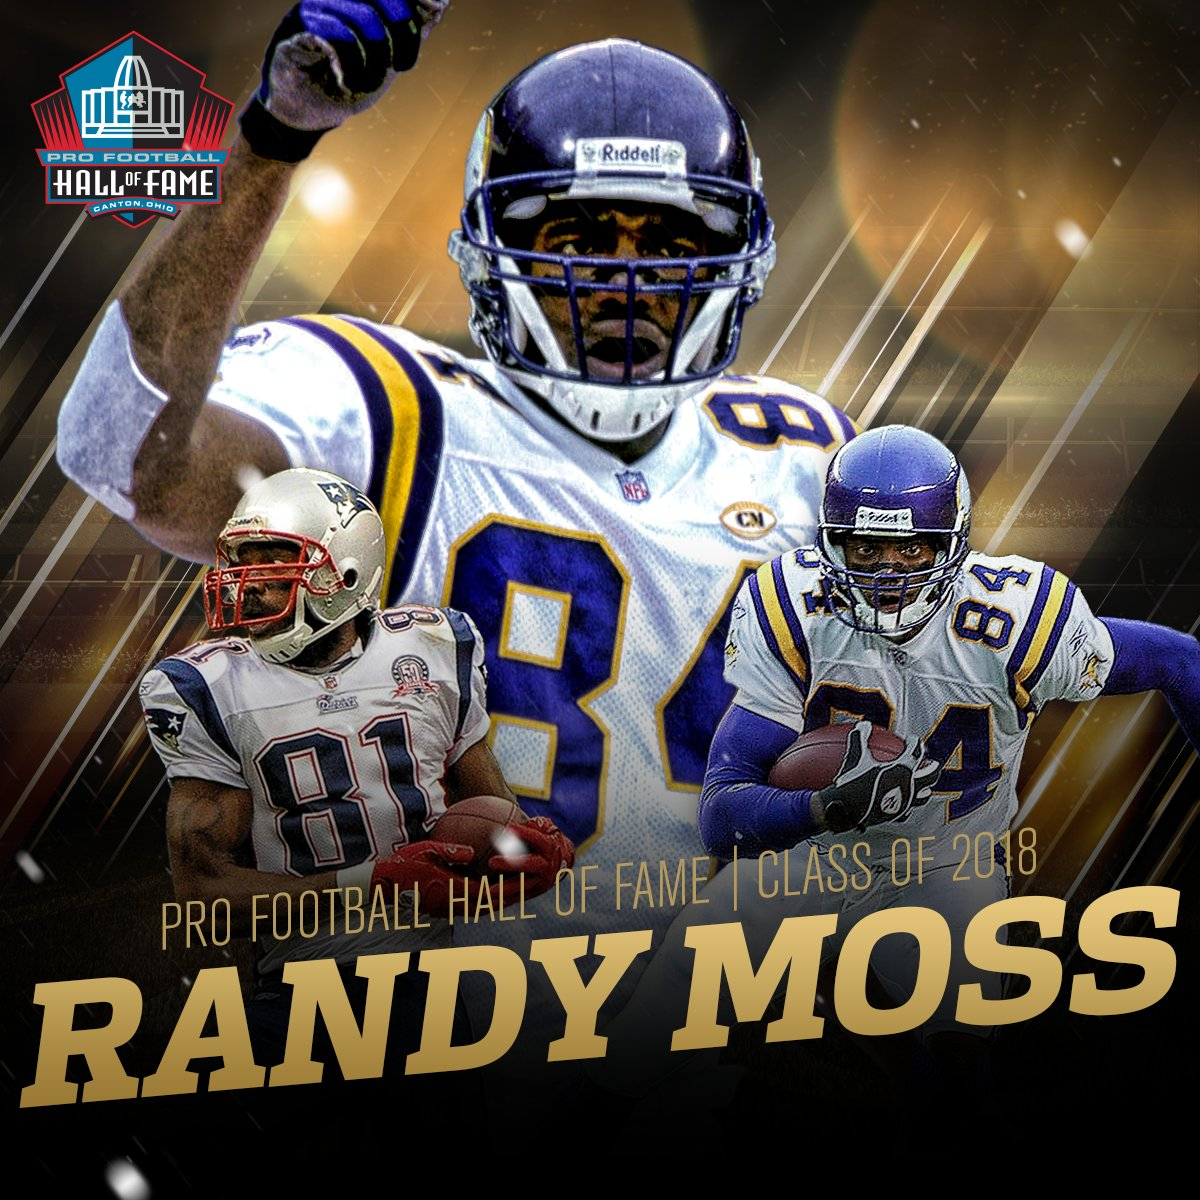 He's in!   See you in Canton, @randymoss! #PFHOF18